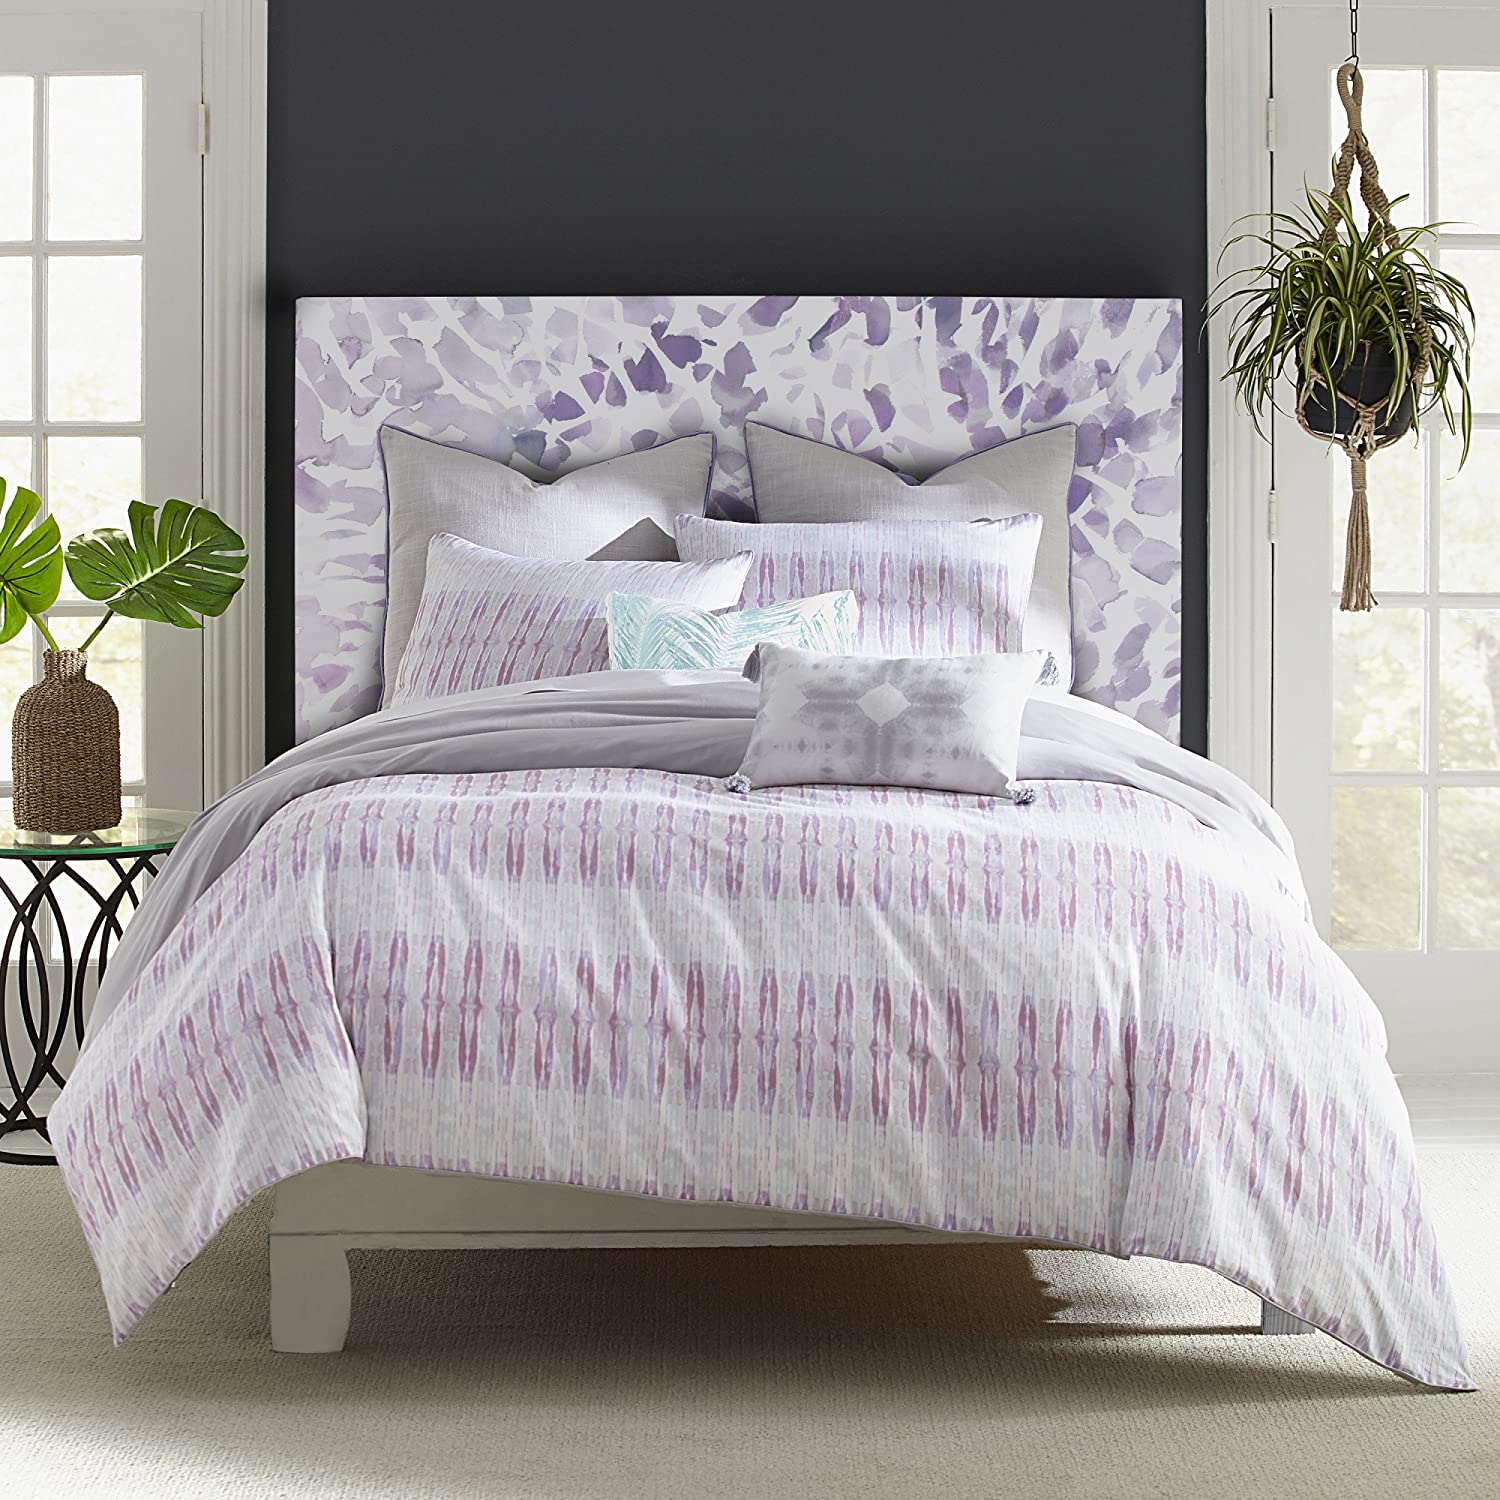 Amy Sia Sanctuary Comforter Set Full Queen Pink 3 Piece Home Kitchen